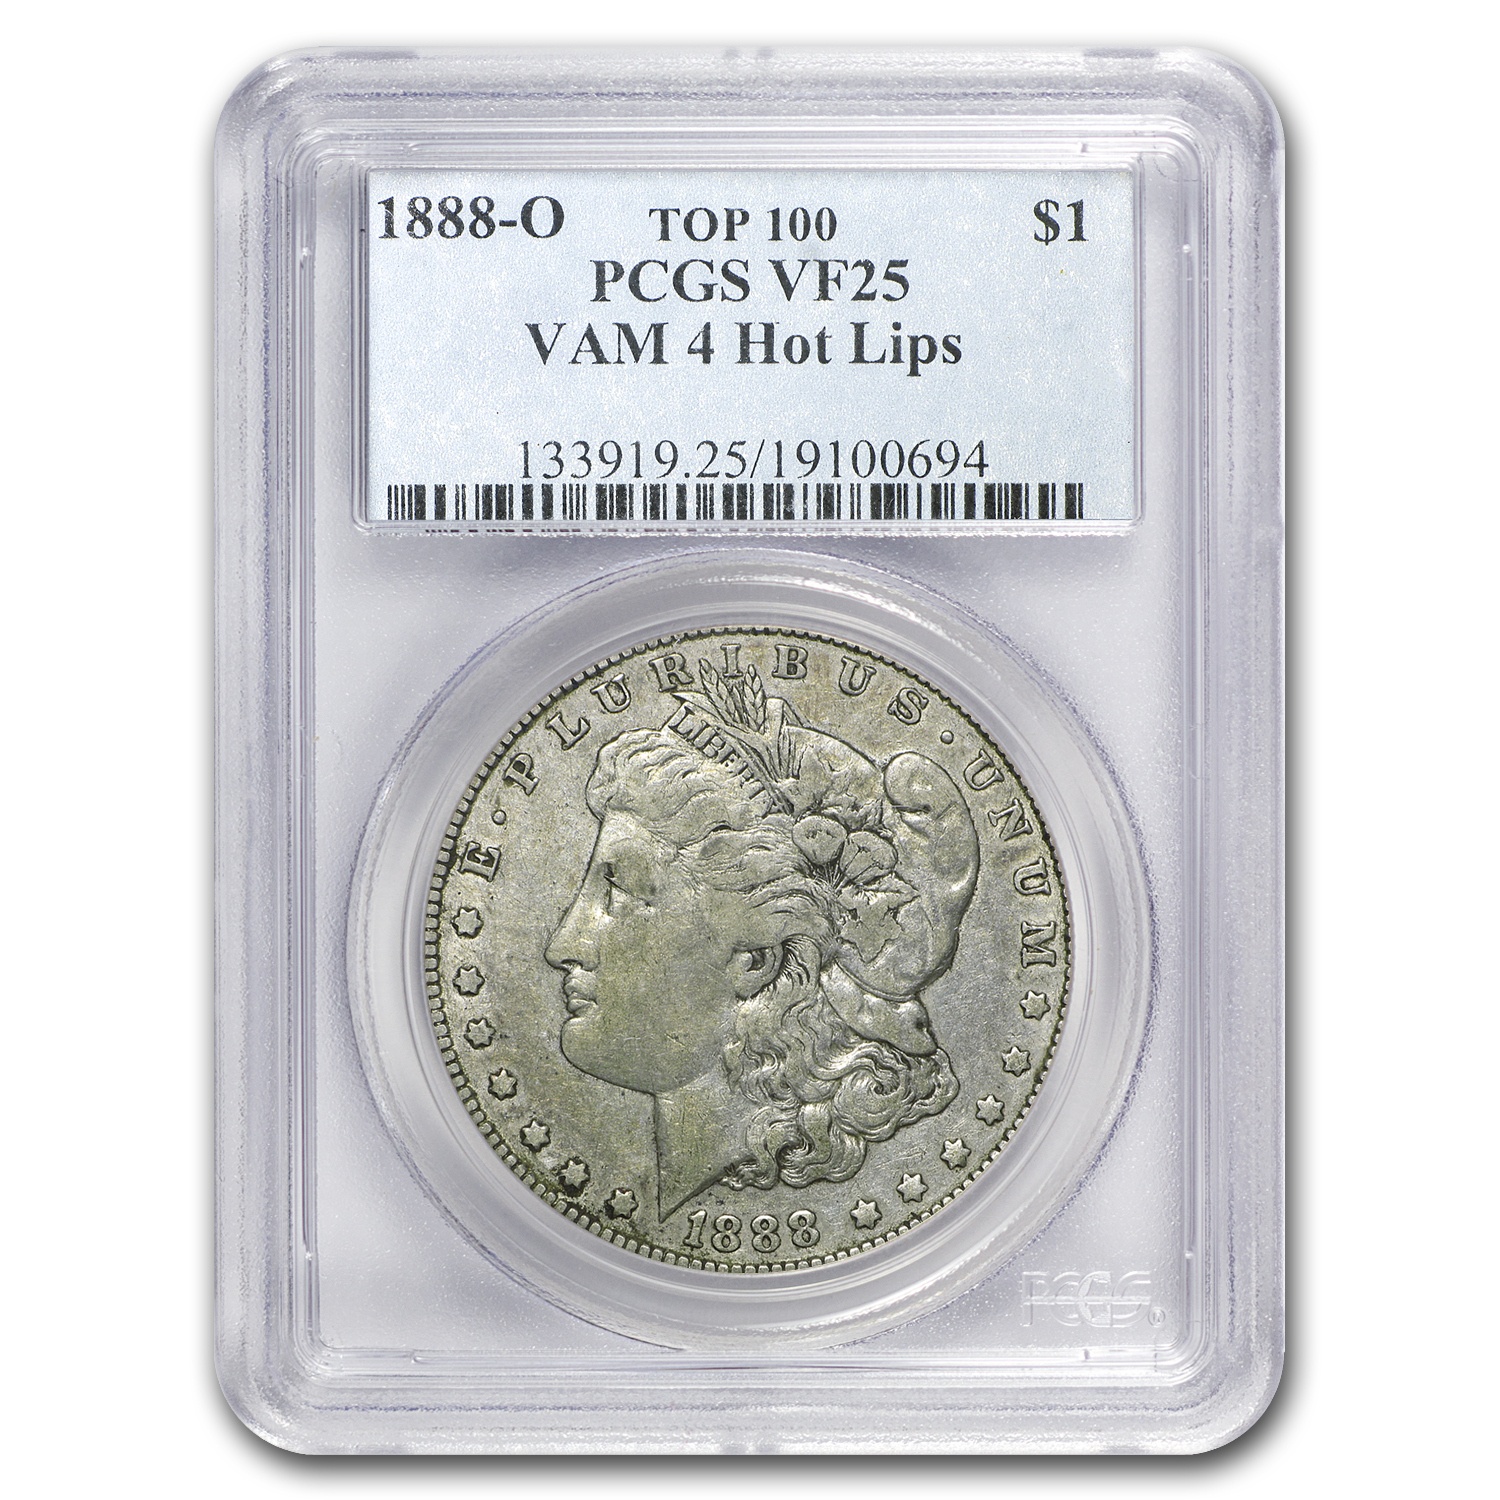 1888-O VF-25 PCGS (VAM-4, Hot Lips, Doubled Die, Top-100)